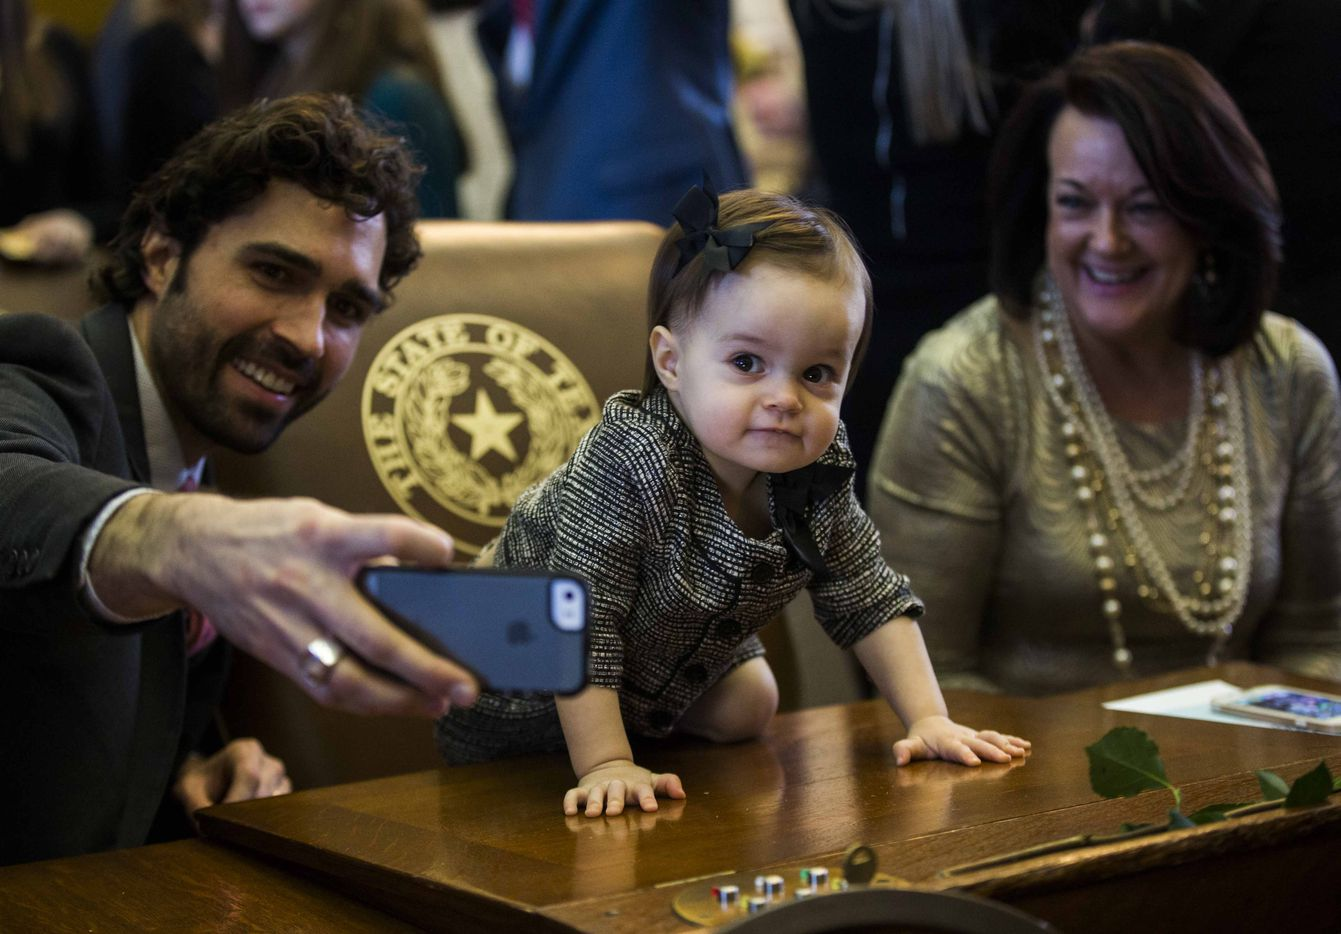 Brandon Zerwas (left) takes a photo of himself with Tinley Zerwas, 1, and Sylvia Zerwas during the first day of the 85th Texas Legislative Session on Tuesday at the Texas State Capitol in Austin. The three are family of state Rep. John Zerwas.